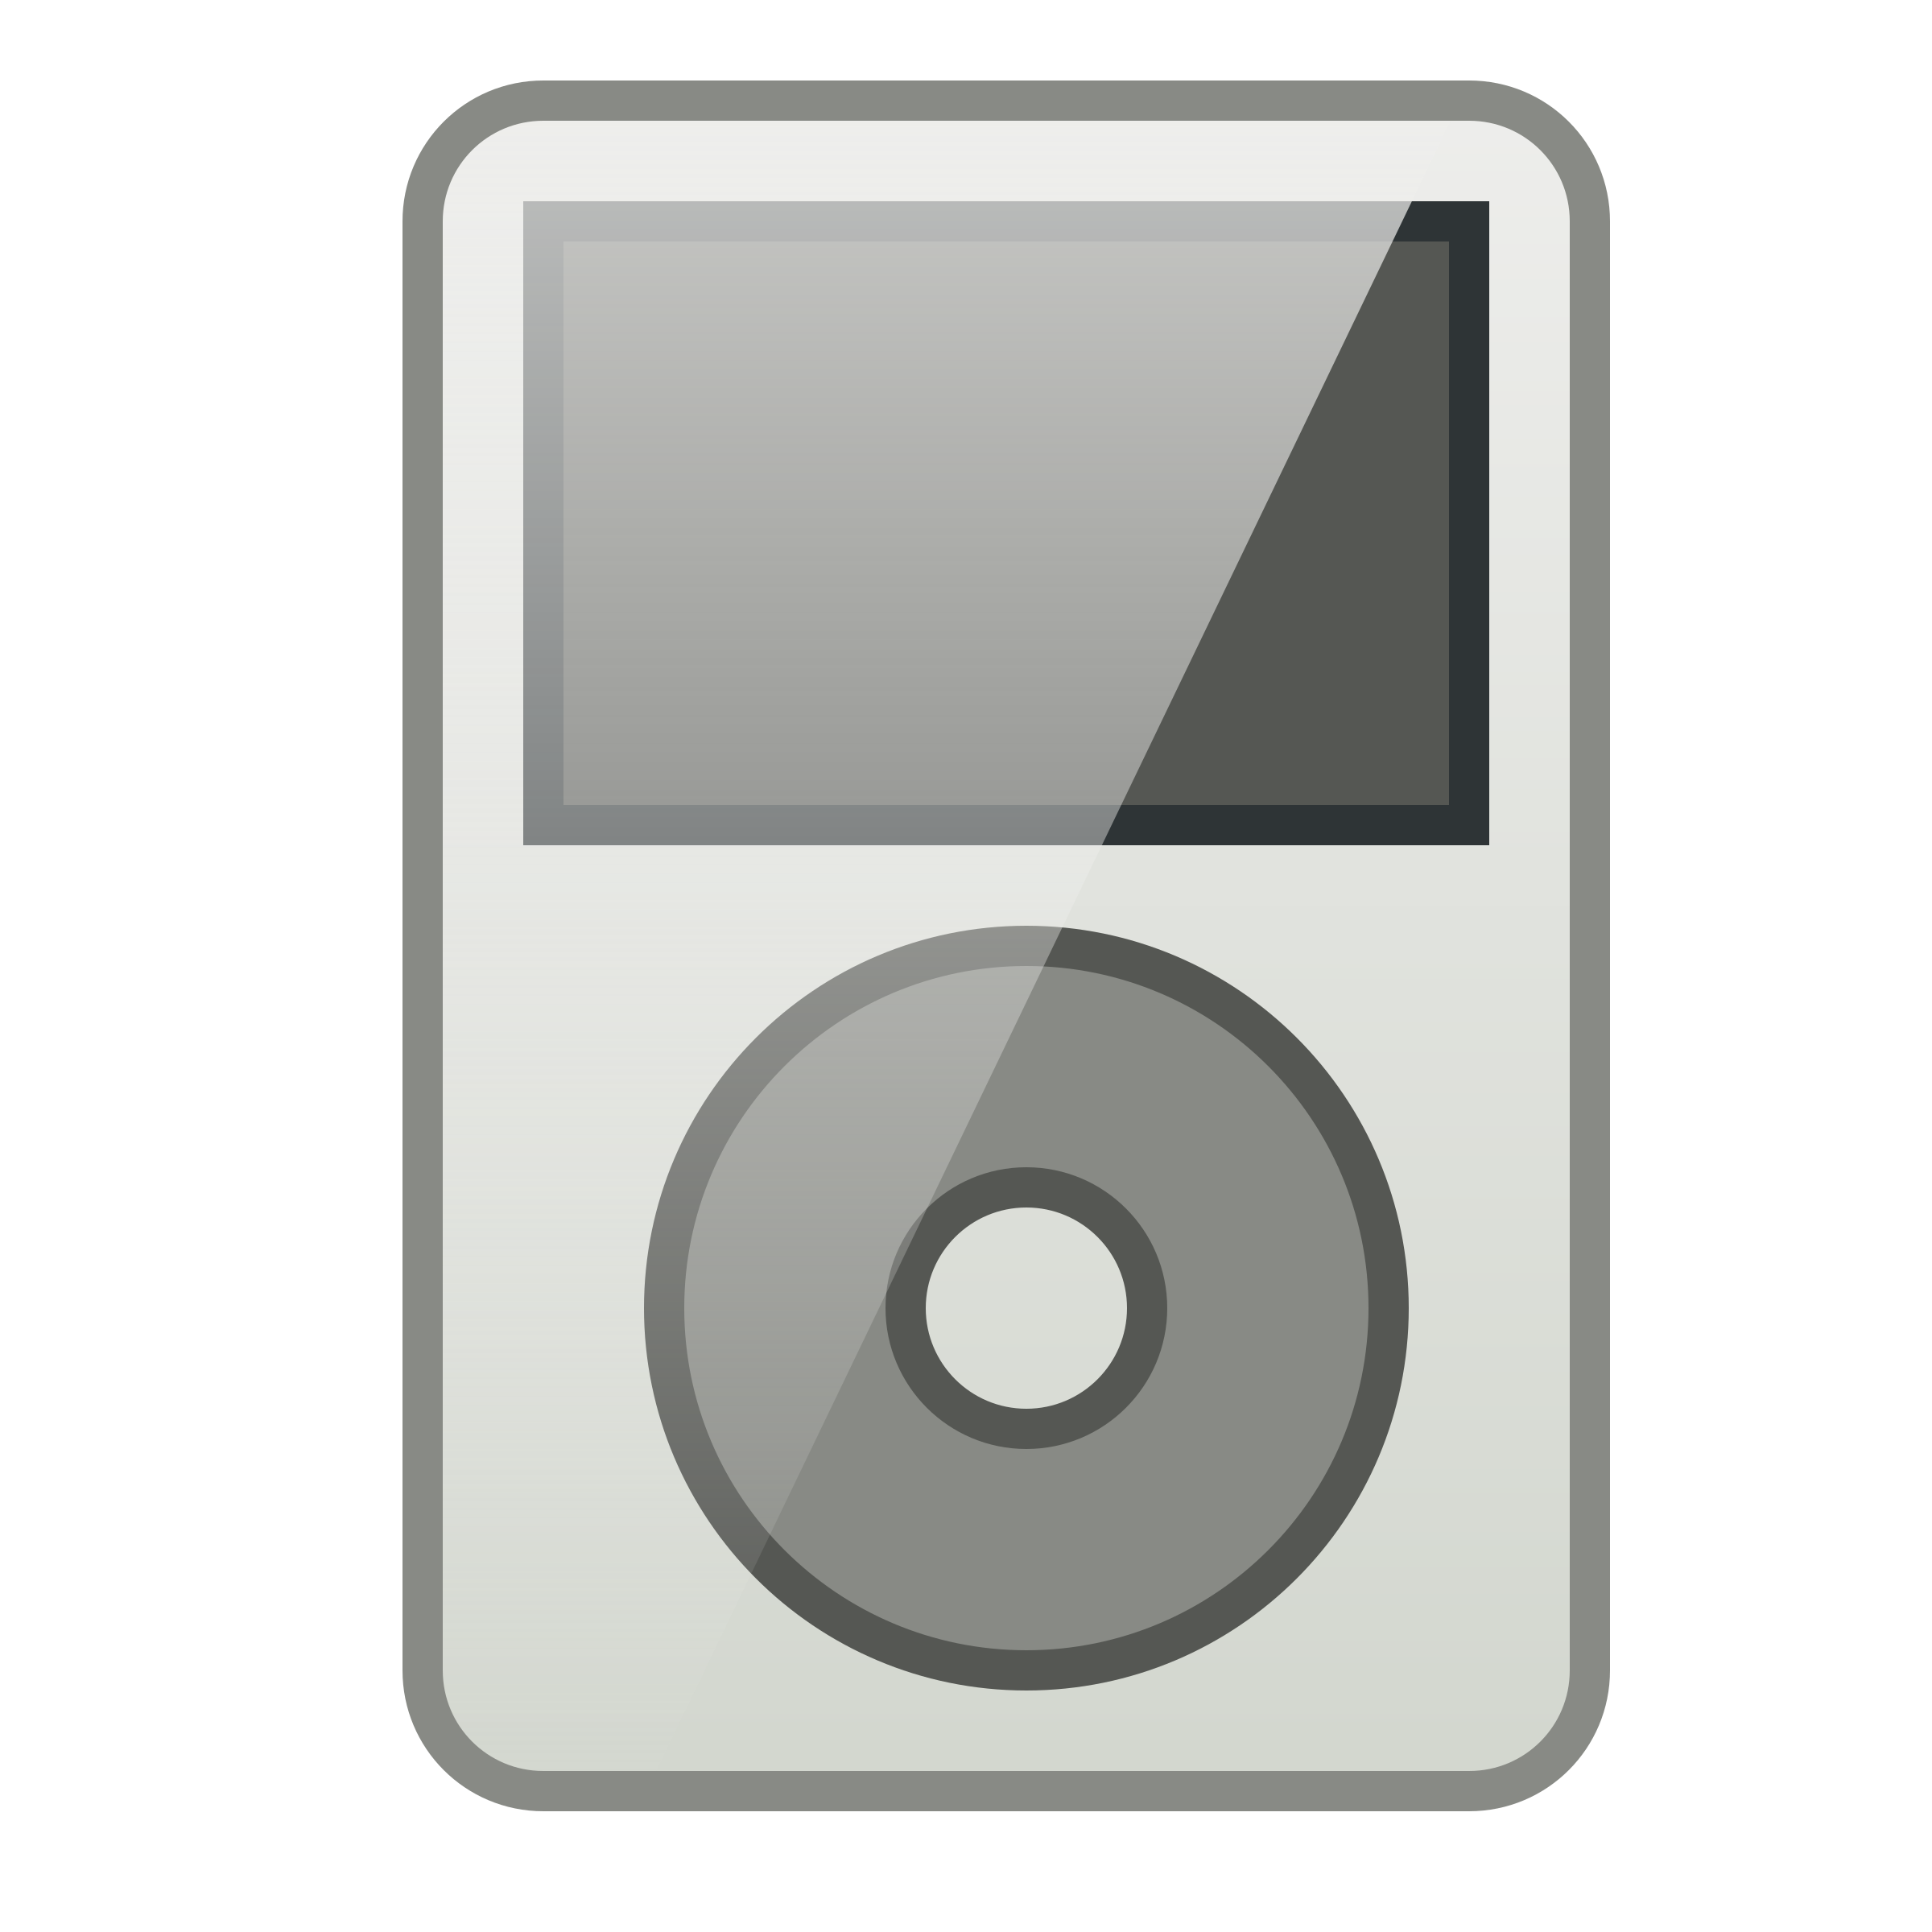 Games vector ipod. Tango icon icons png